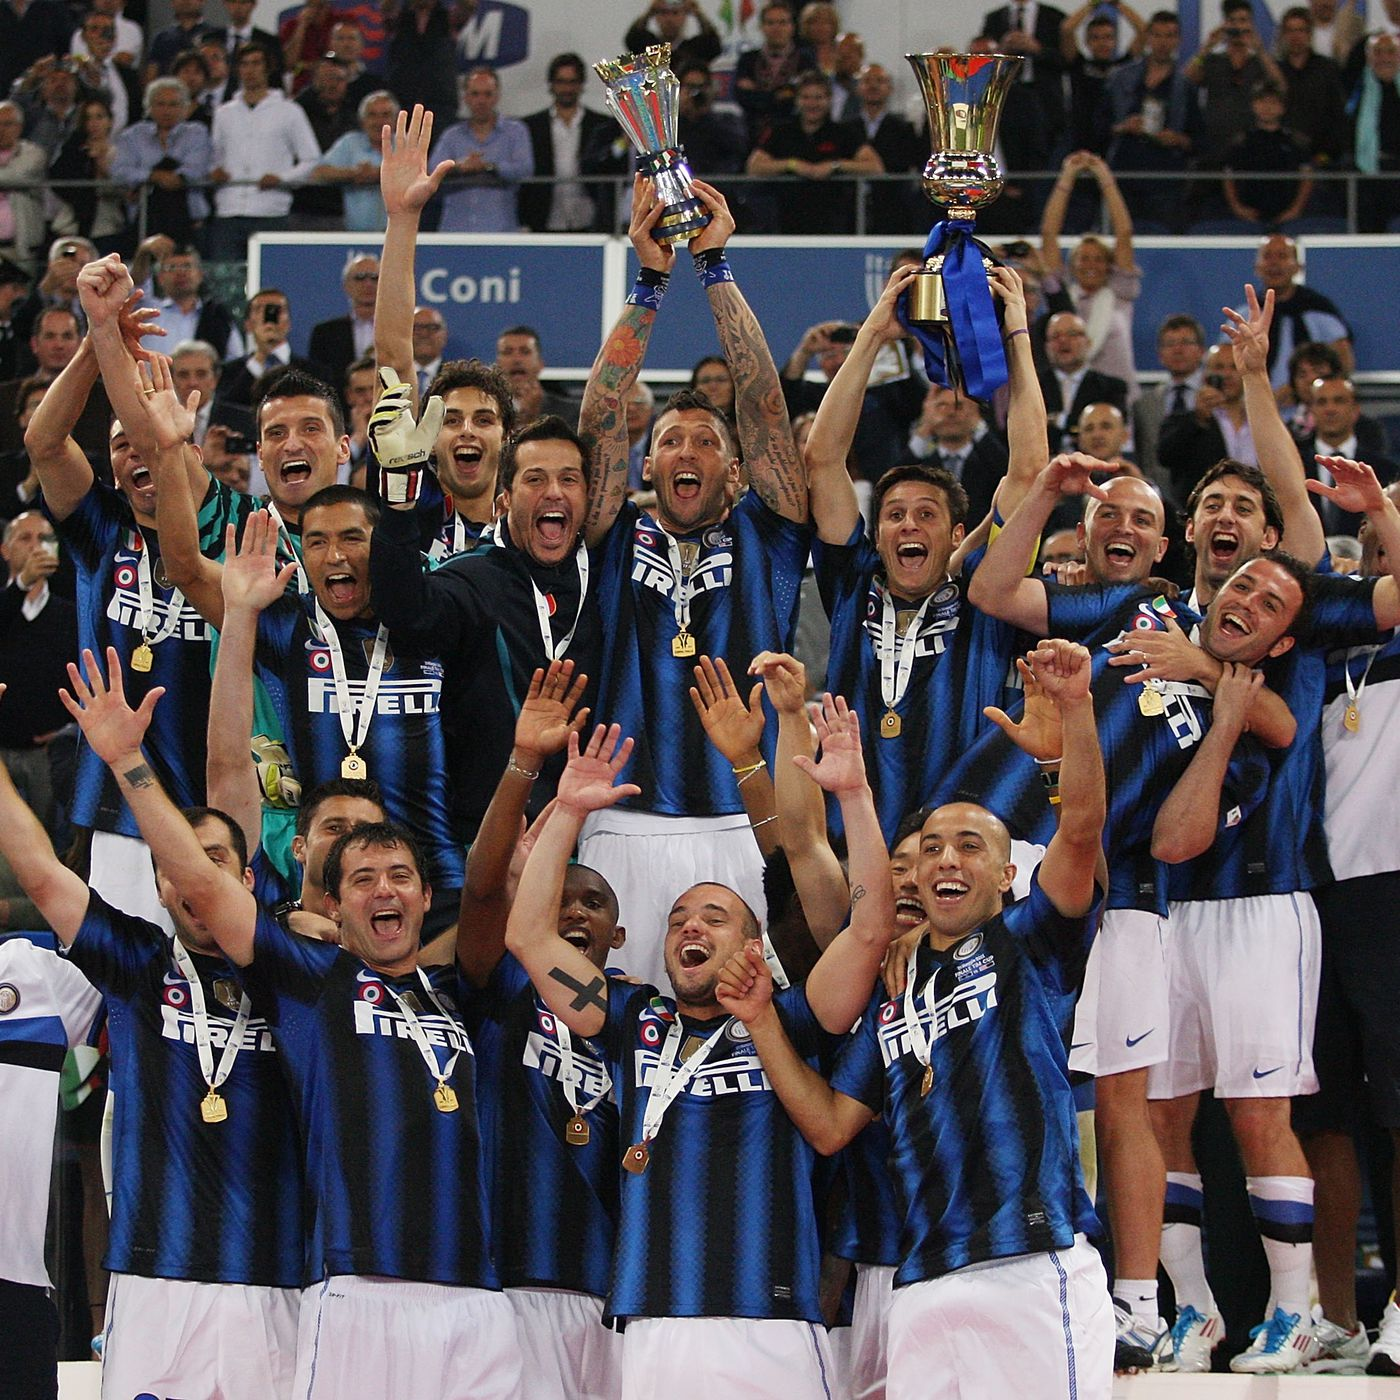 Inter could face Milan in Coppa Italia quarter-finals - Serpents of  Madonnina